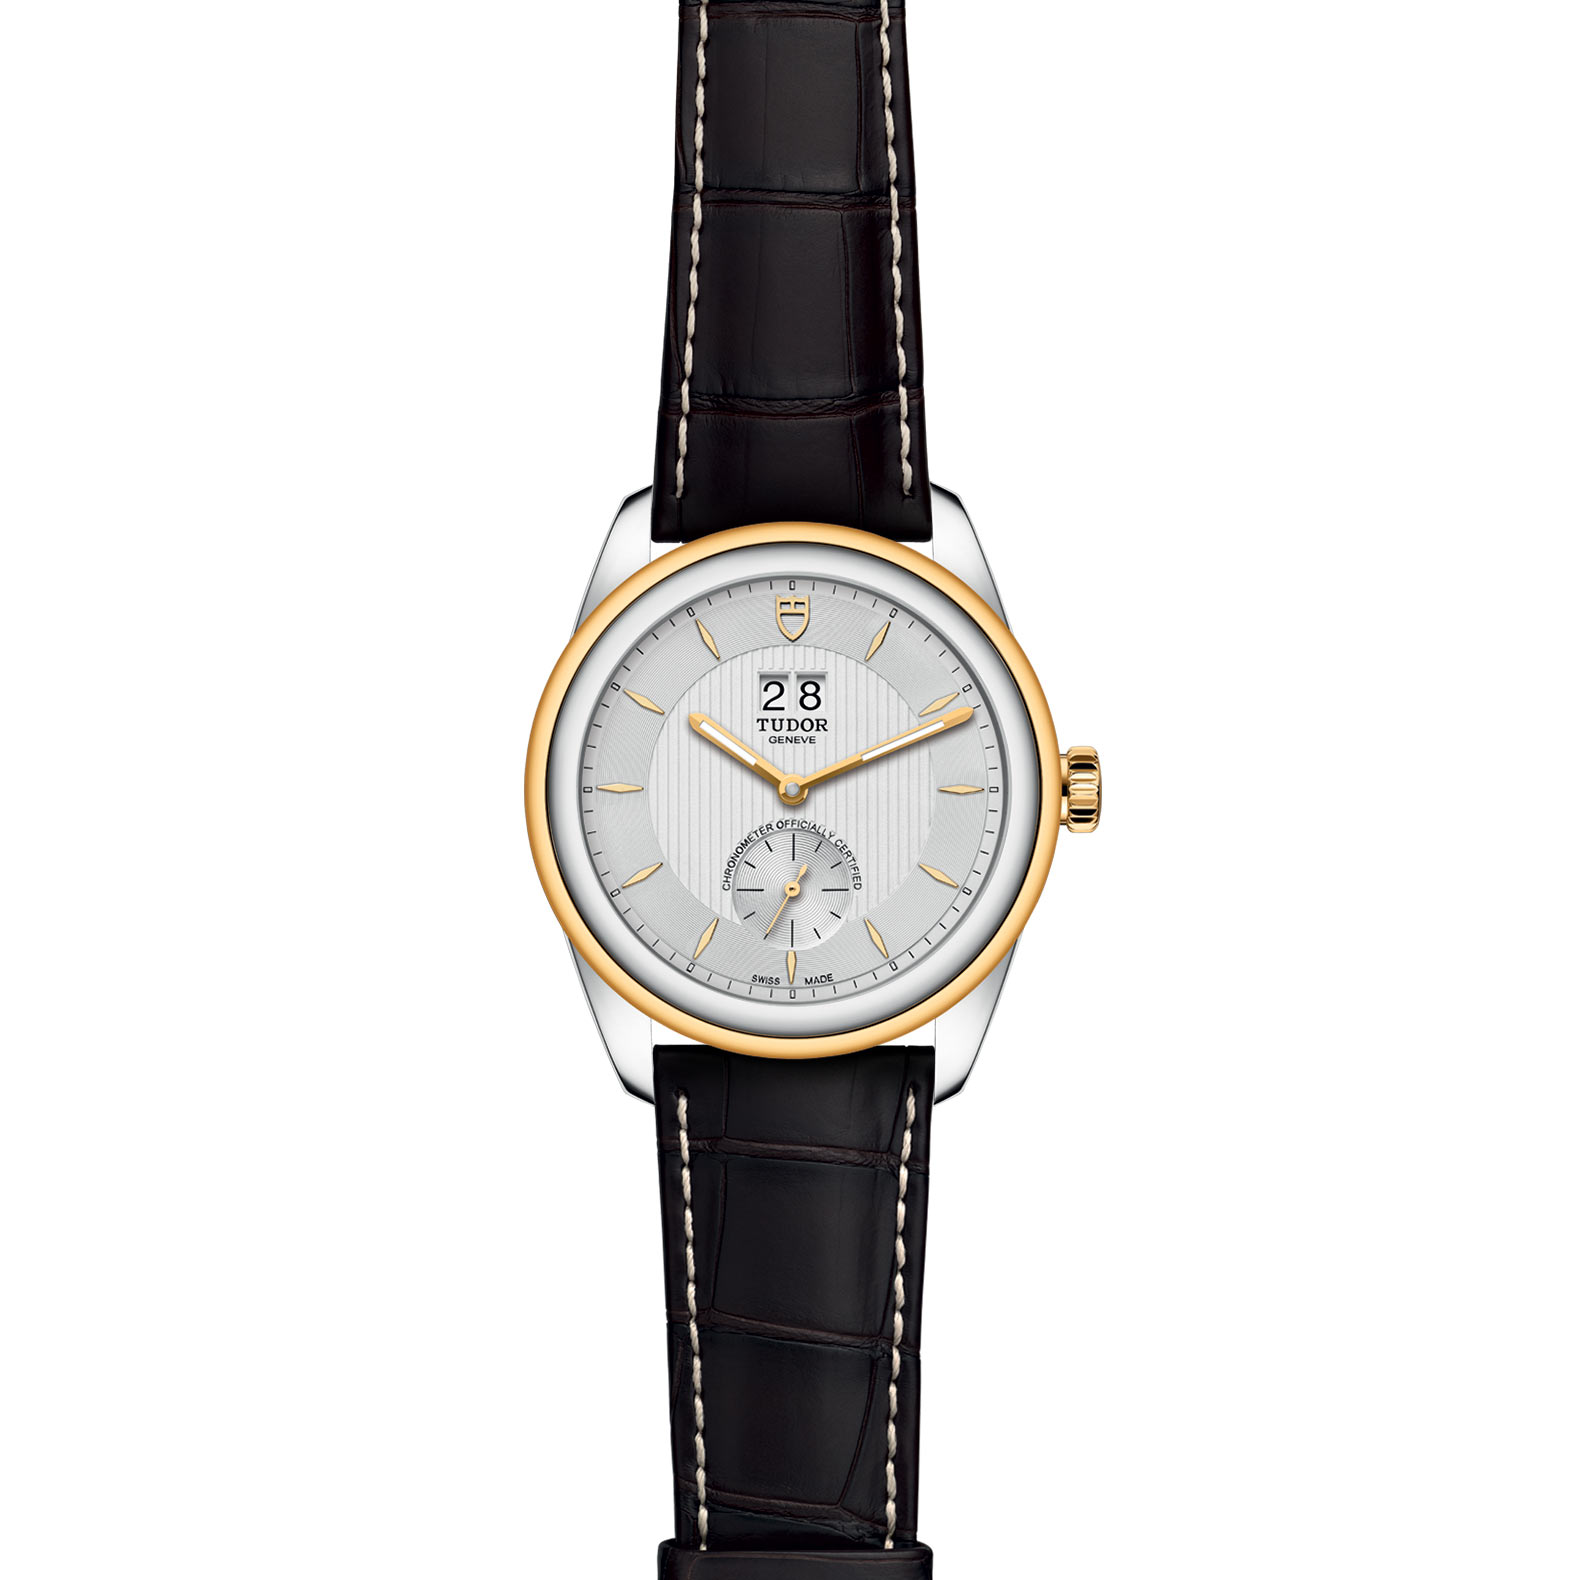 TUDOR Glamour Double Date M57103 0019 Frontfacing